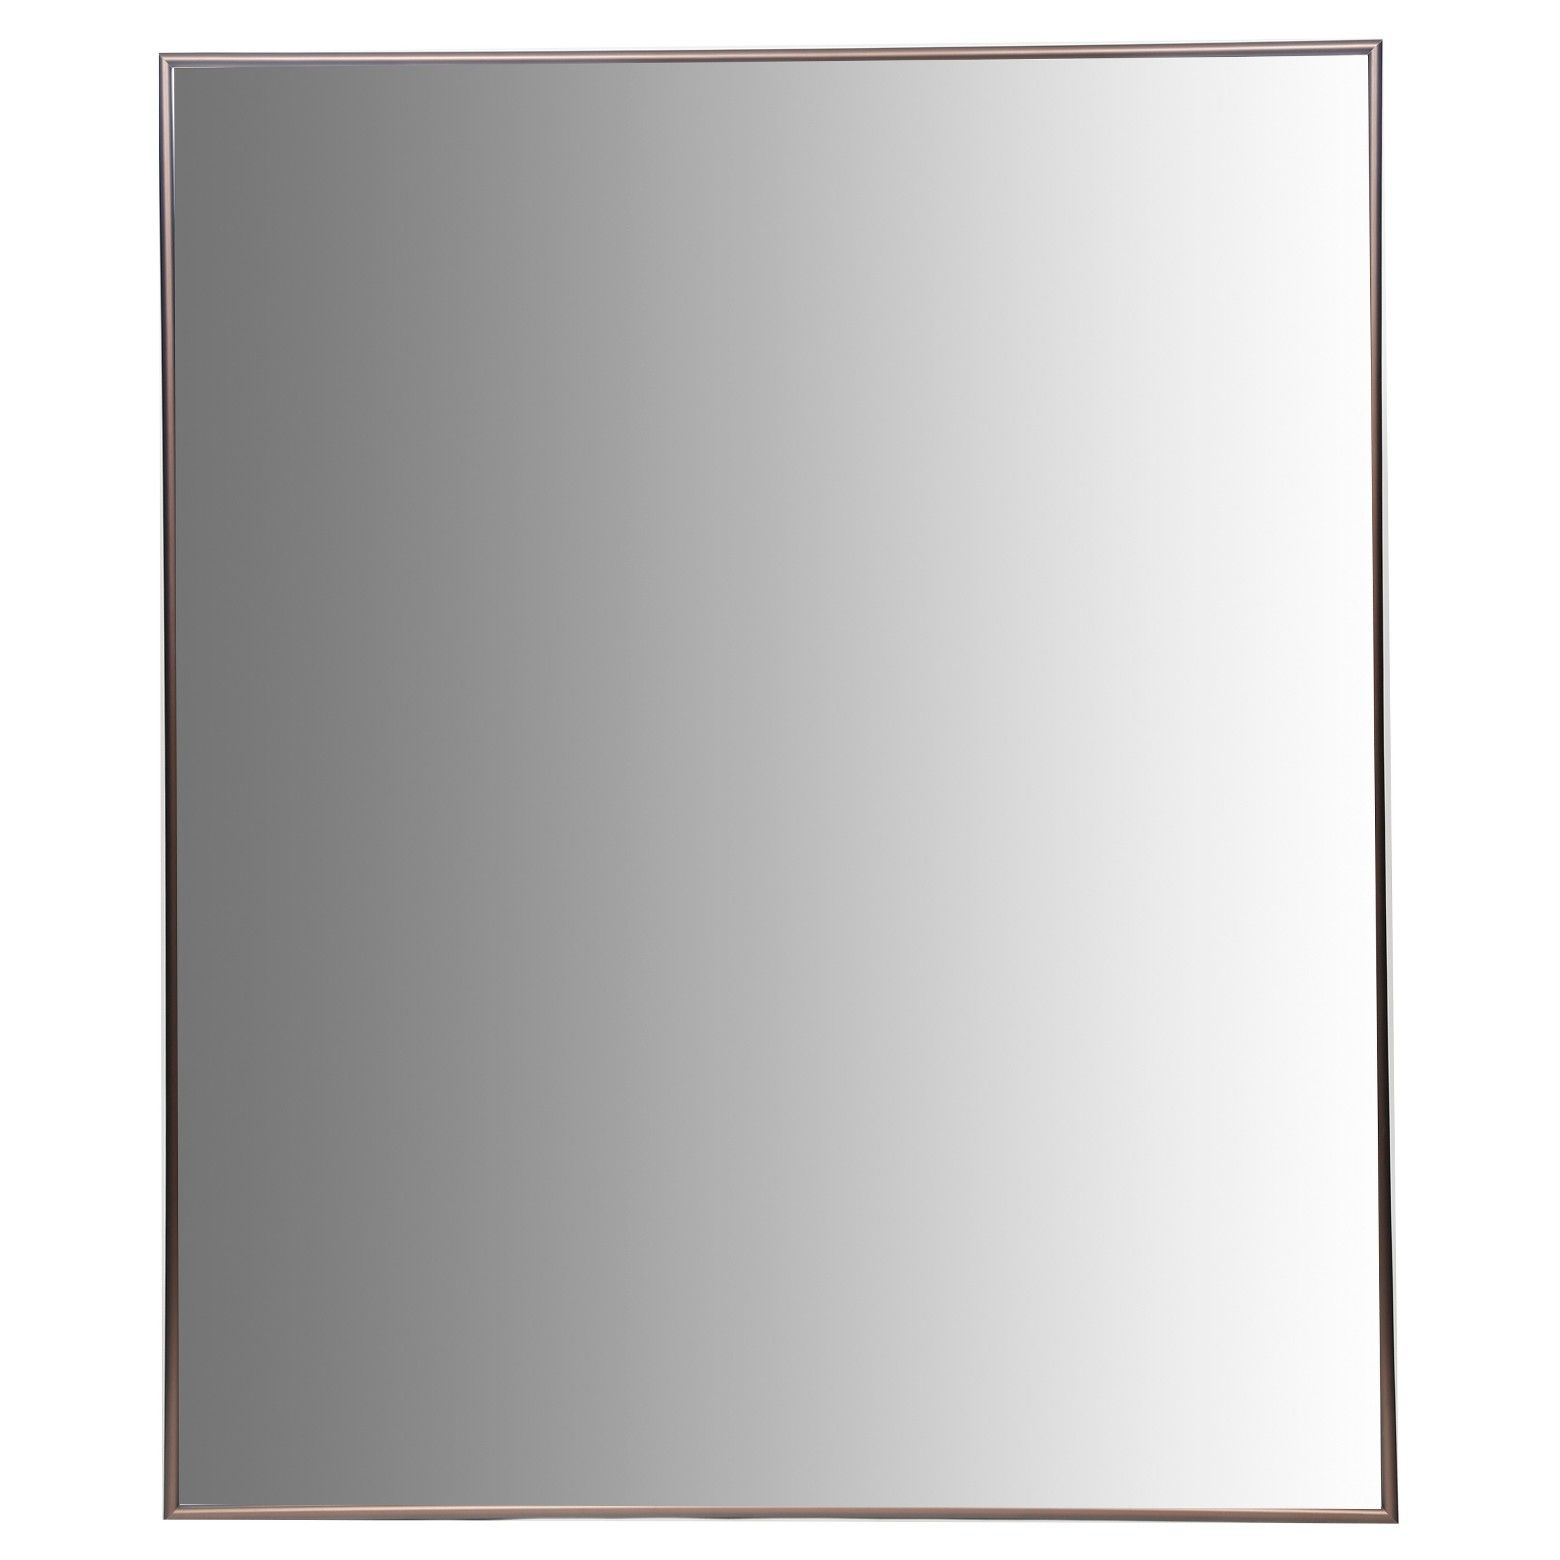 24x30 Bronze Aluminum Vanity Mirror With 3 8 Wide Moulding Bronze Nielsen Bainbridge Vanity Wall Mirror Vanity Mirror Bathroom Vanity Mirror